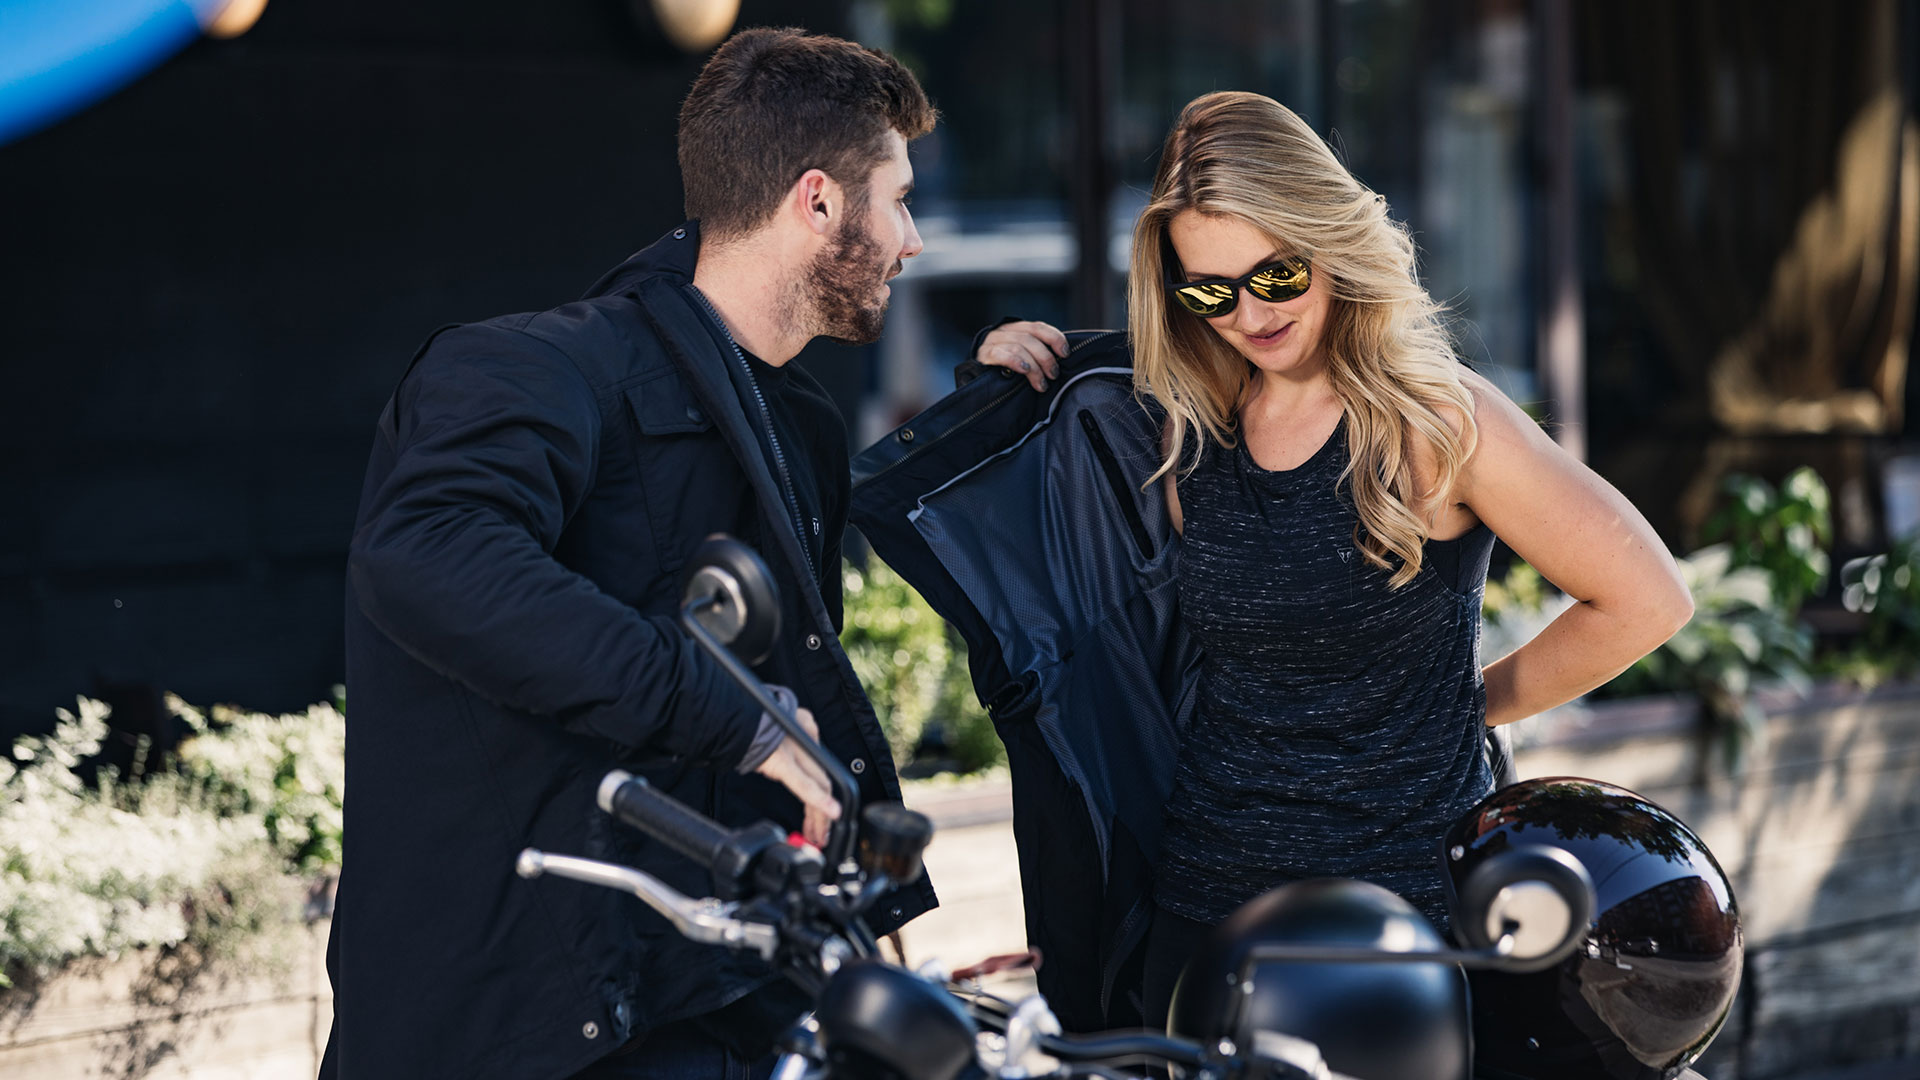 Couple behind a Triumph Street Twin wearing Triumph clothing